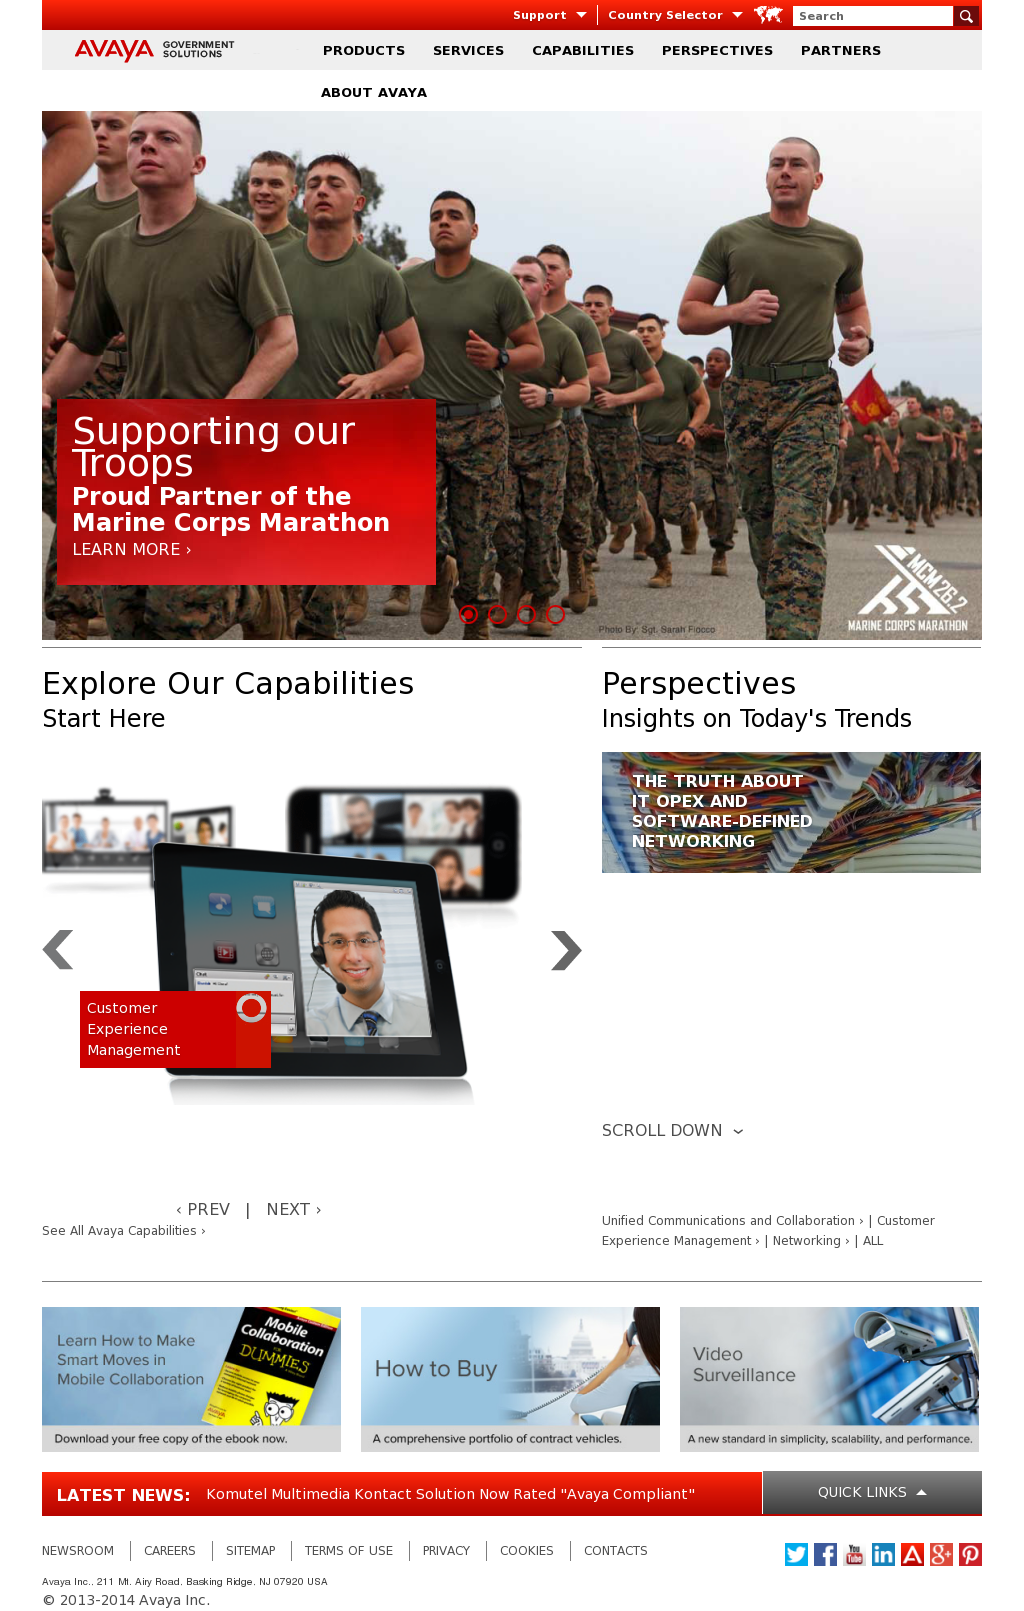 Avaya Government Solutions Competitors, Revenue and